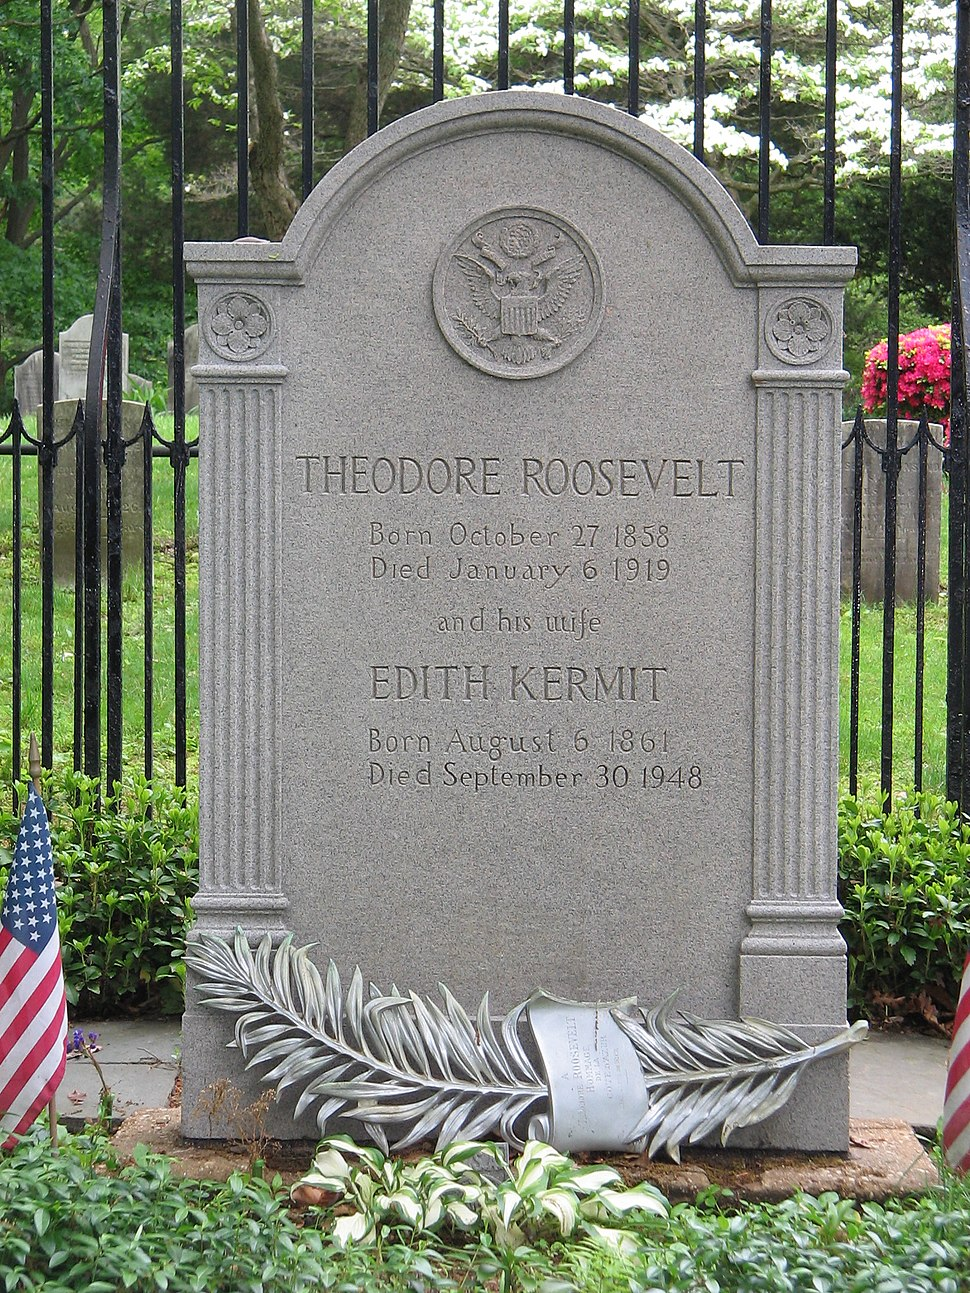 Roosevelt in Youngs Memorial Cemetery